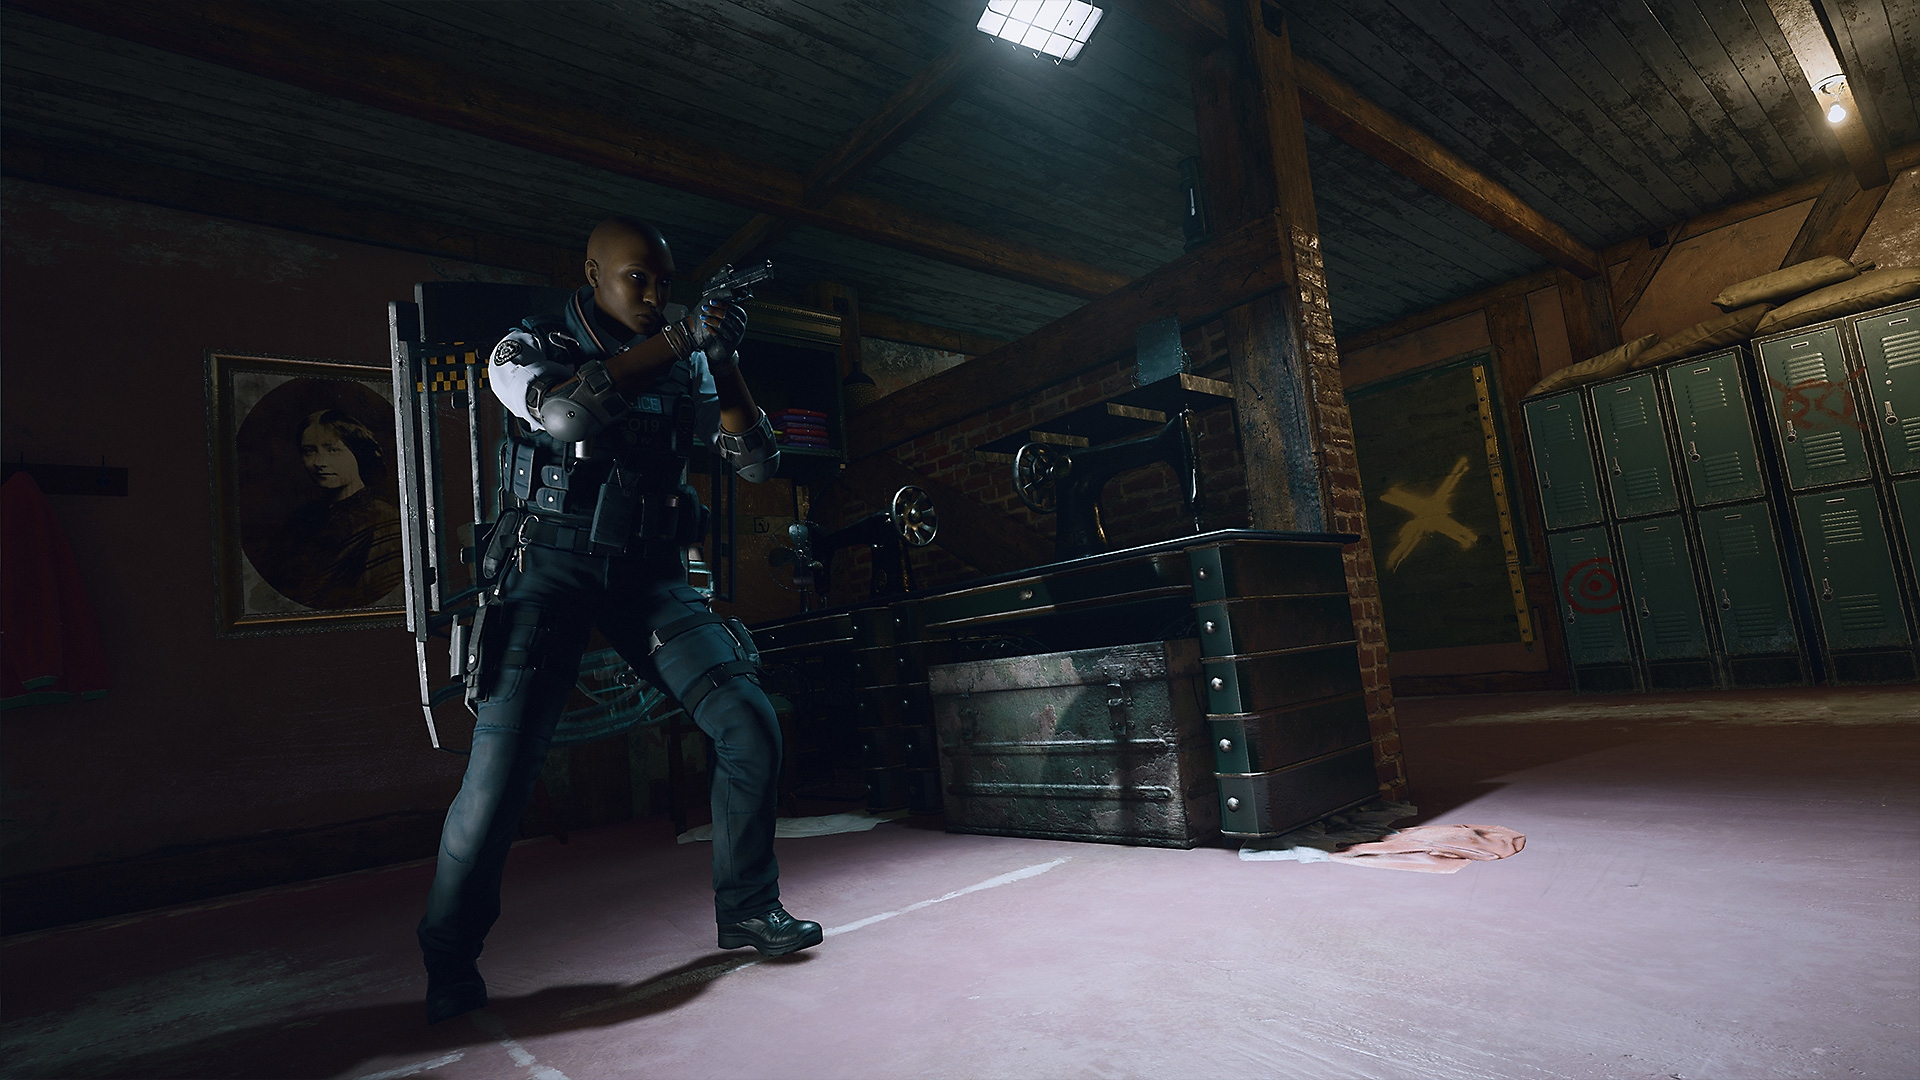 Rainbow Six Siege - gameplay screenshot